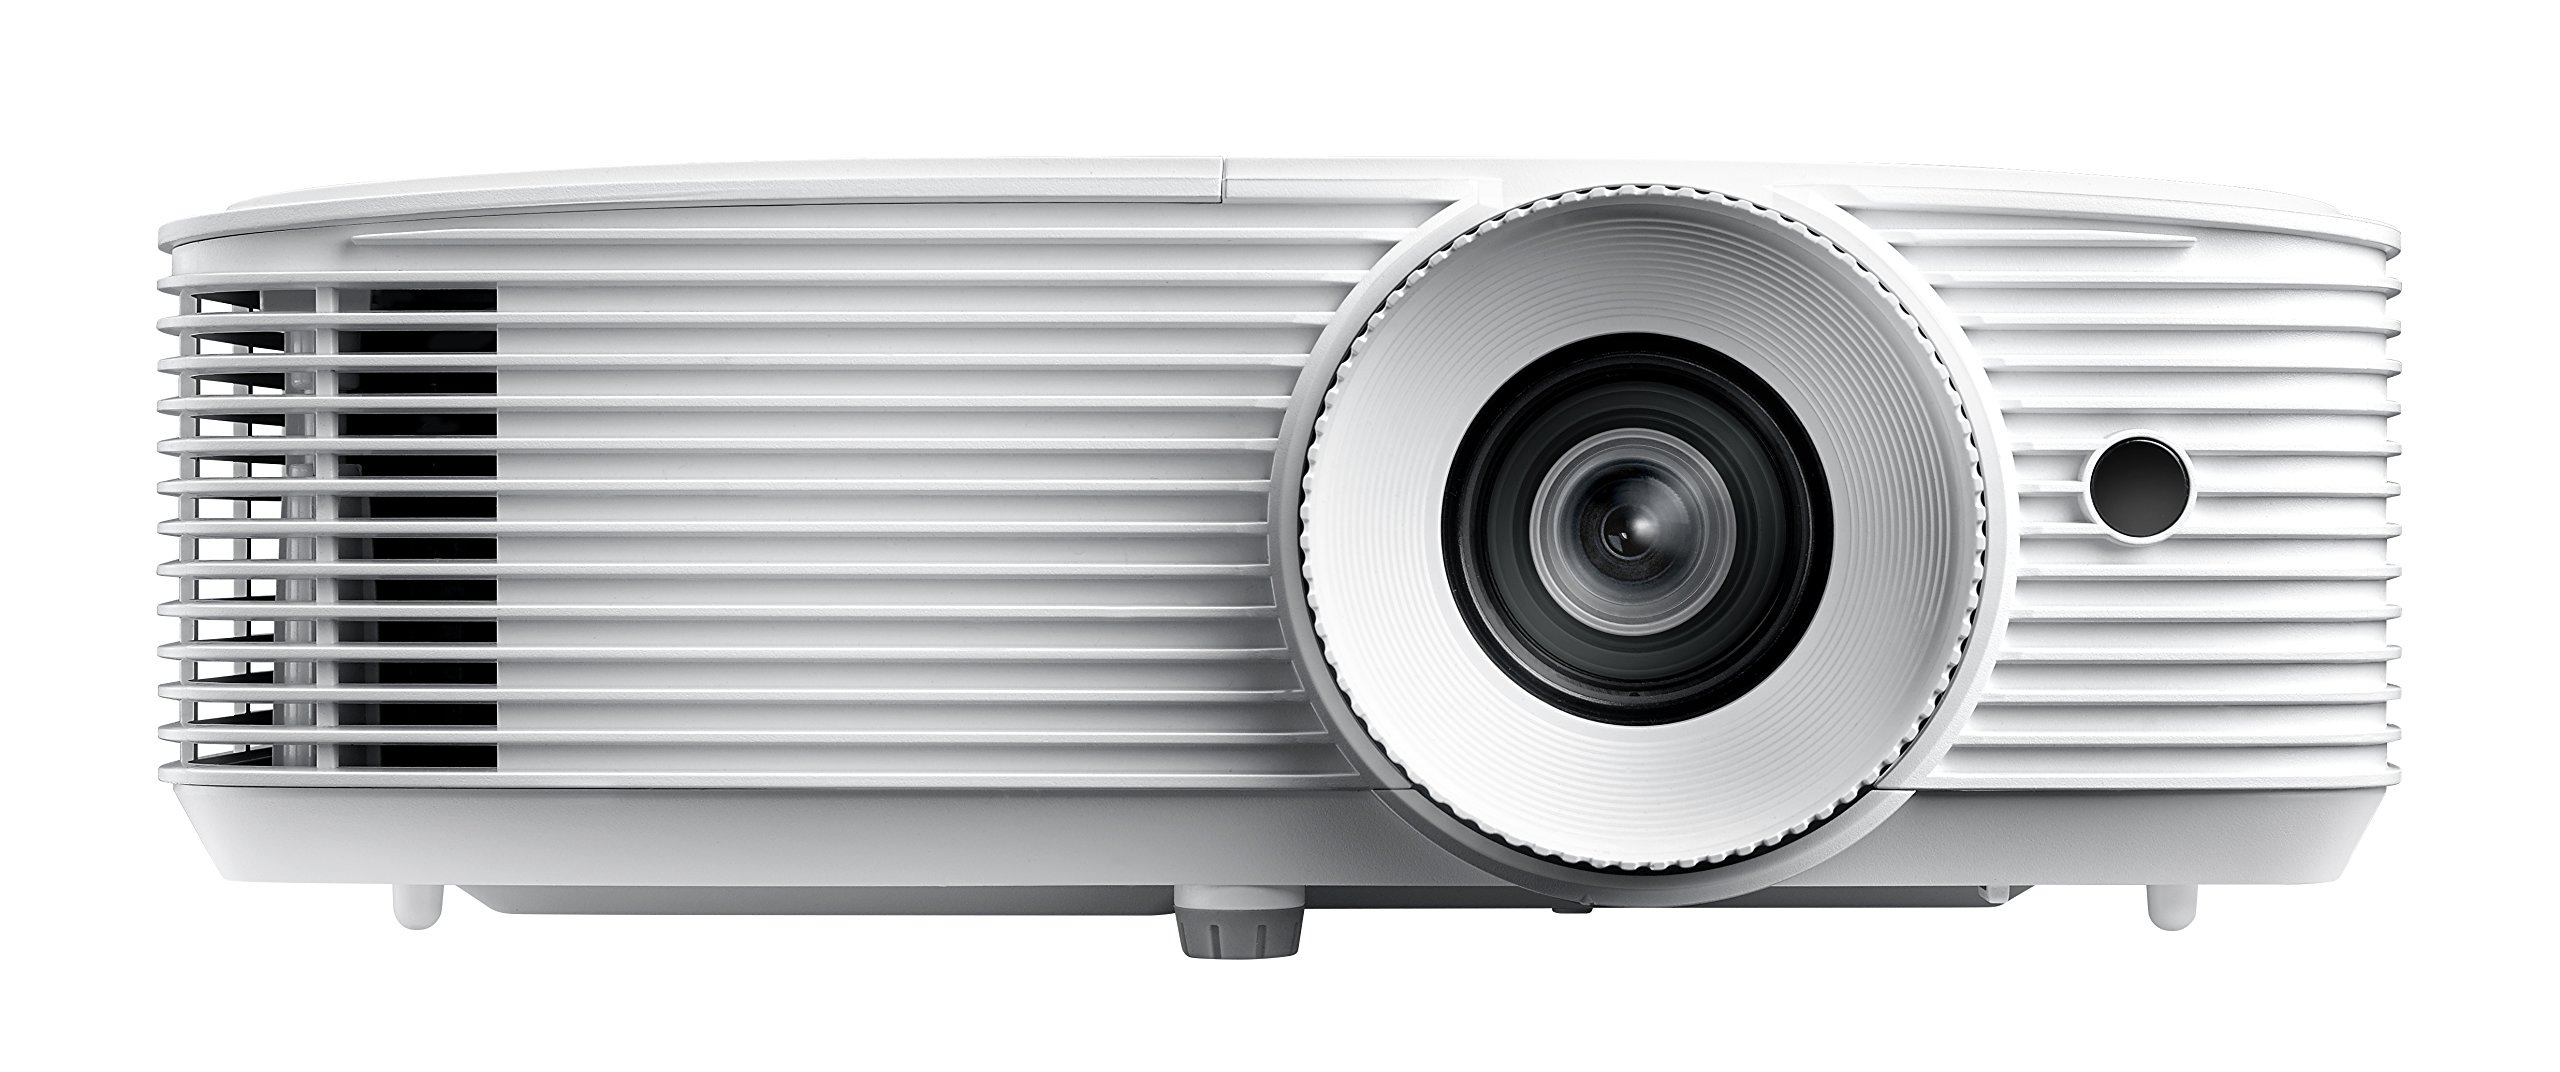 Optoma HD27e 3400 Lumens 1080p Home Theater Projector by Optoma